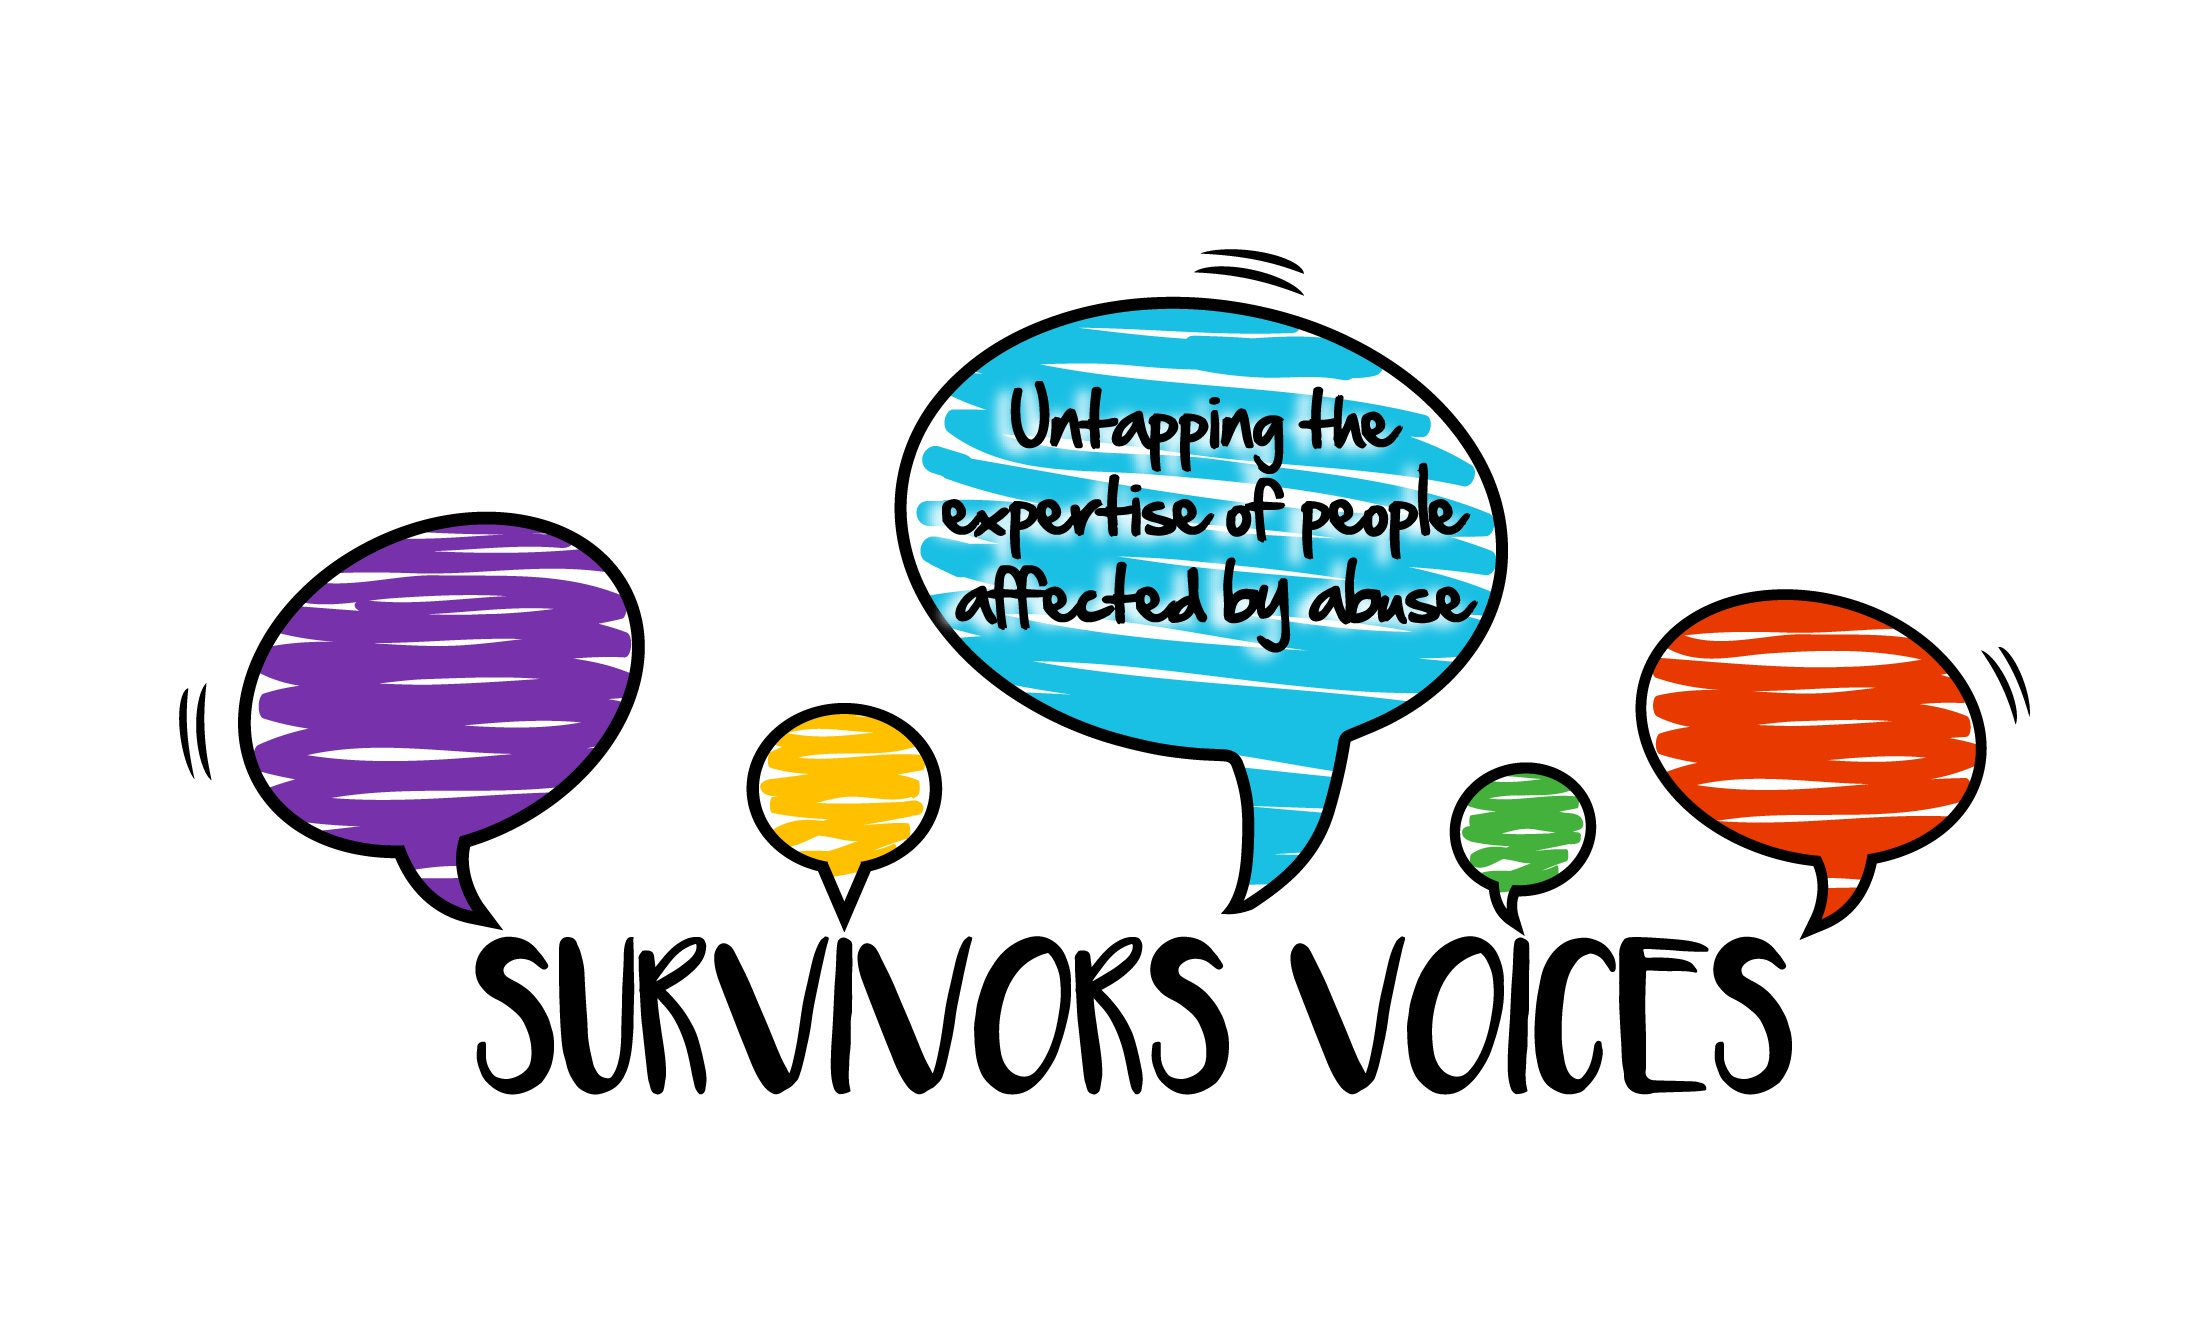 Survivors Voices